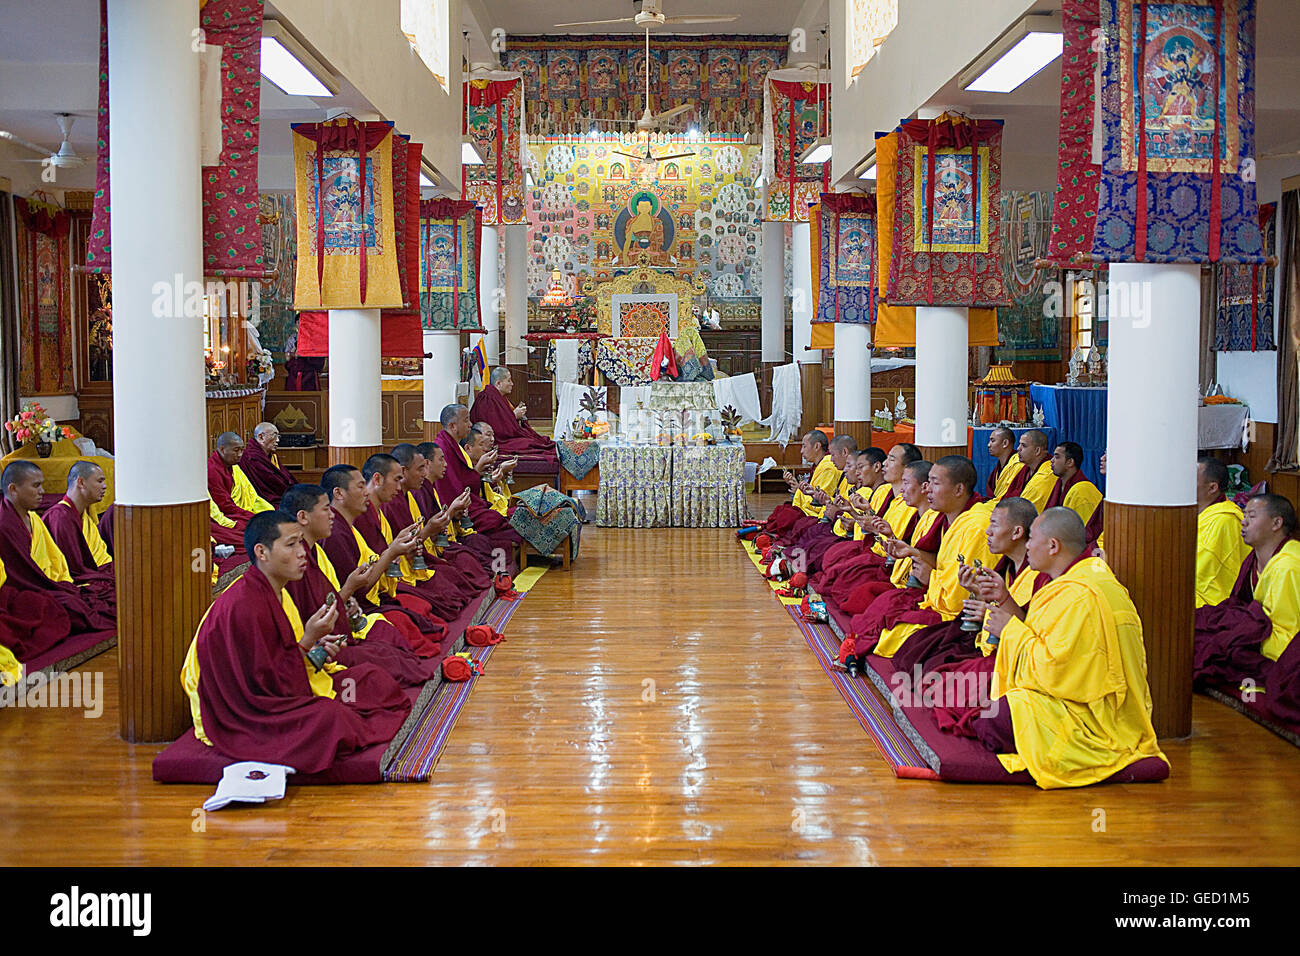 Puja,Monks praying, in Namgyal Monastery,in Tsuglagkhang complex. McLeod Ganj, Dharamsala, Himachal Pradesh state, - Stock Image